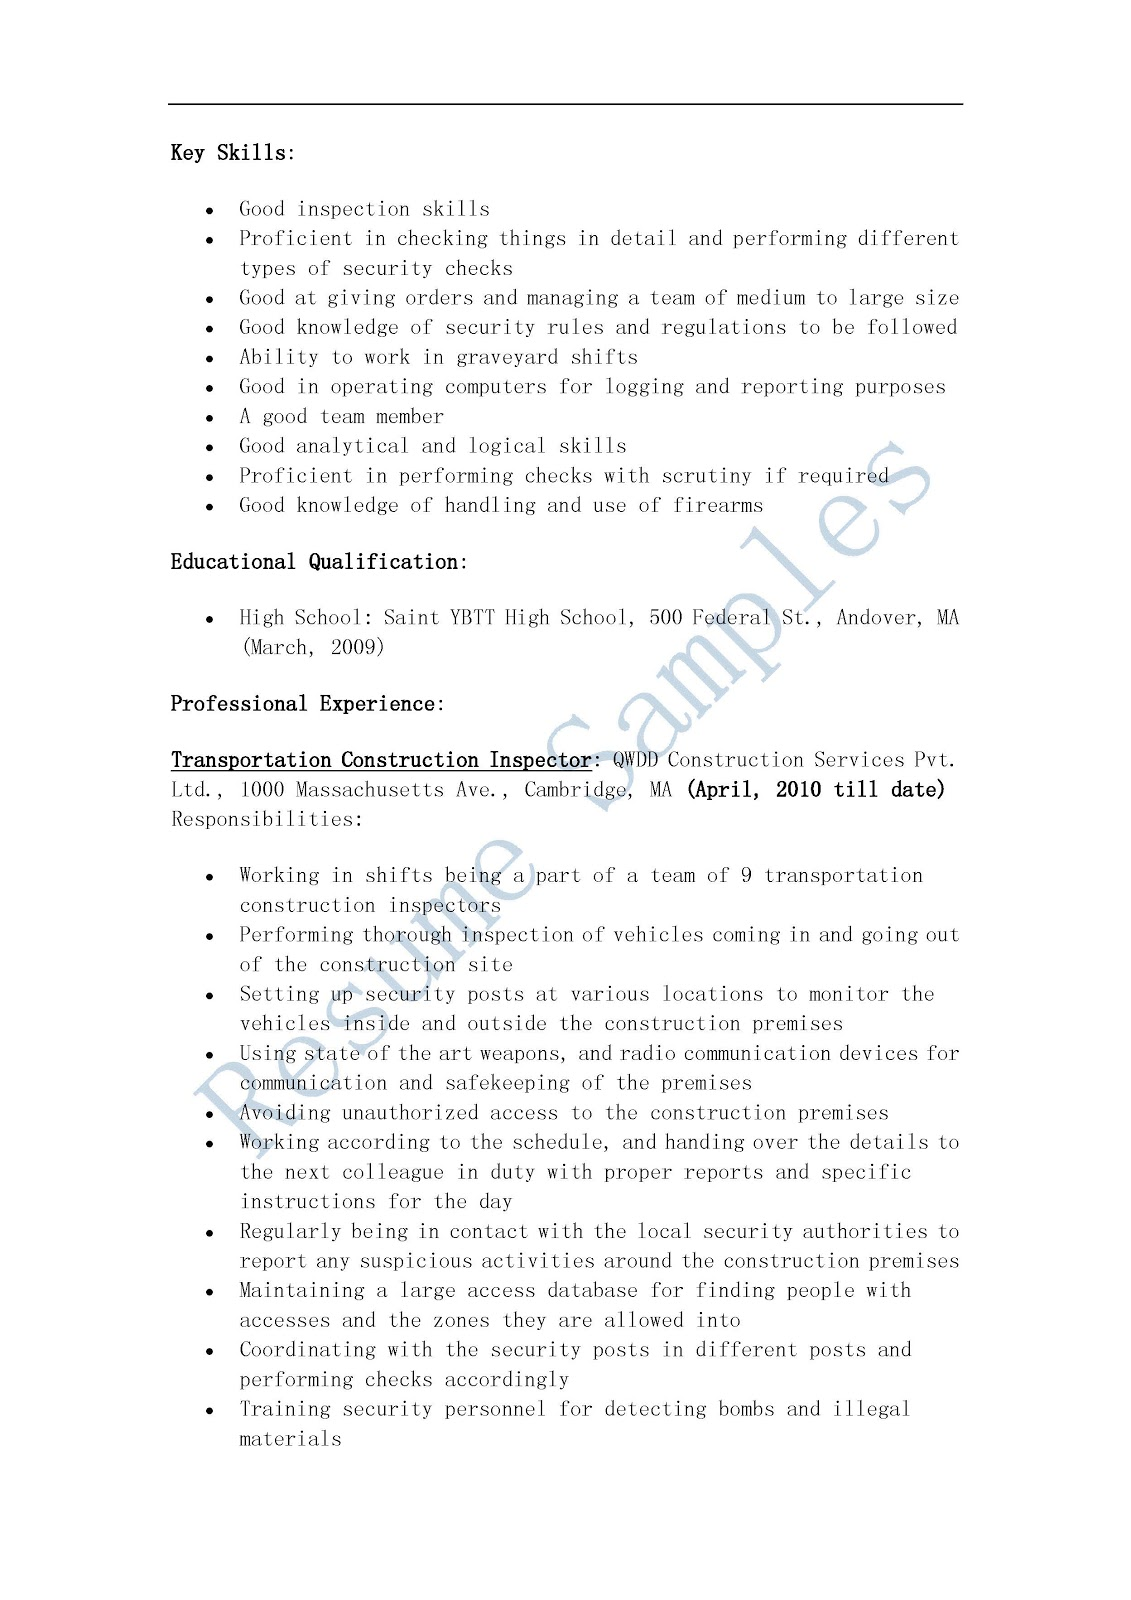 resume samples  transportation construction inspector resume